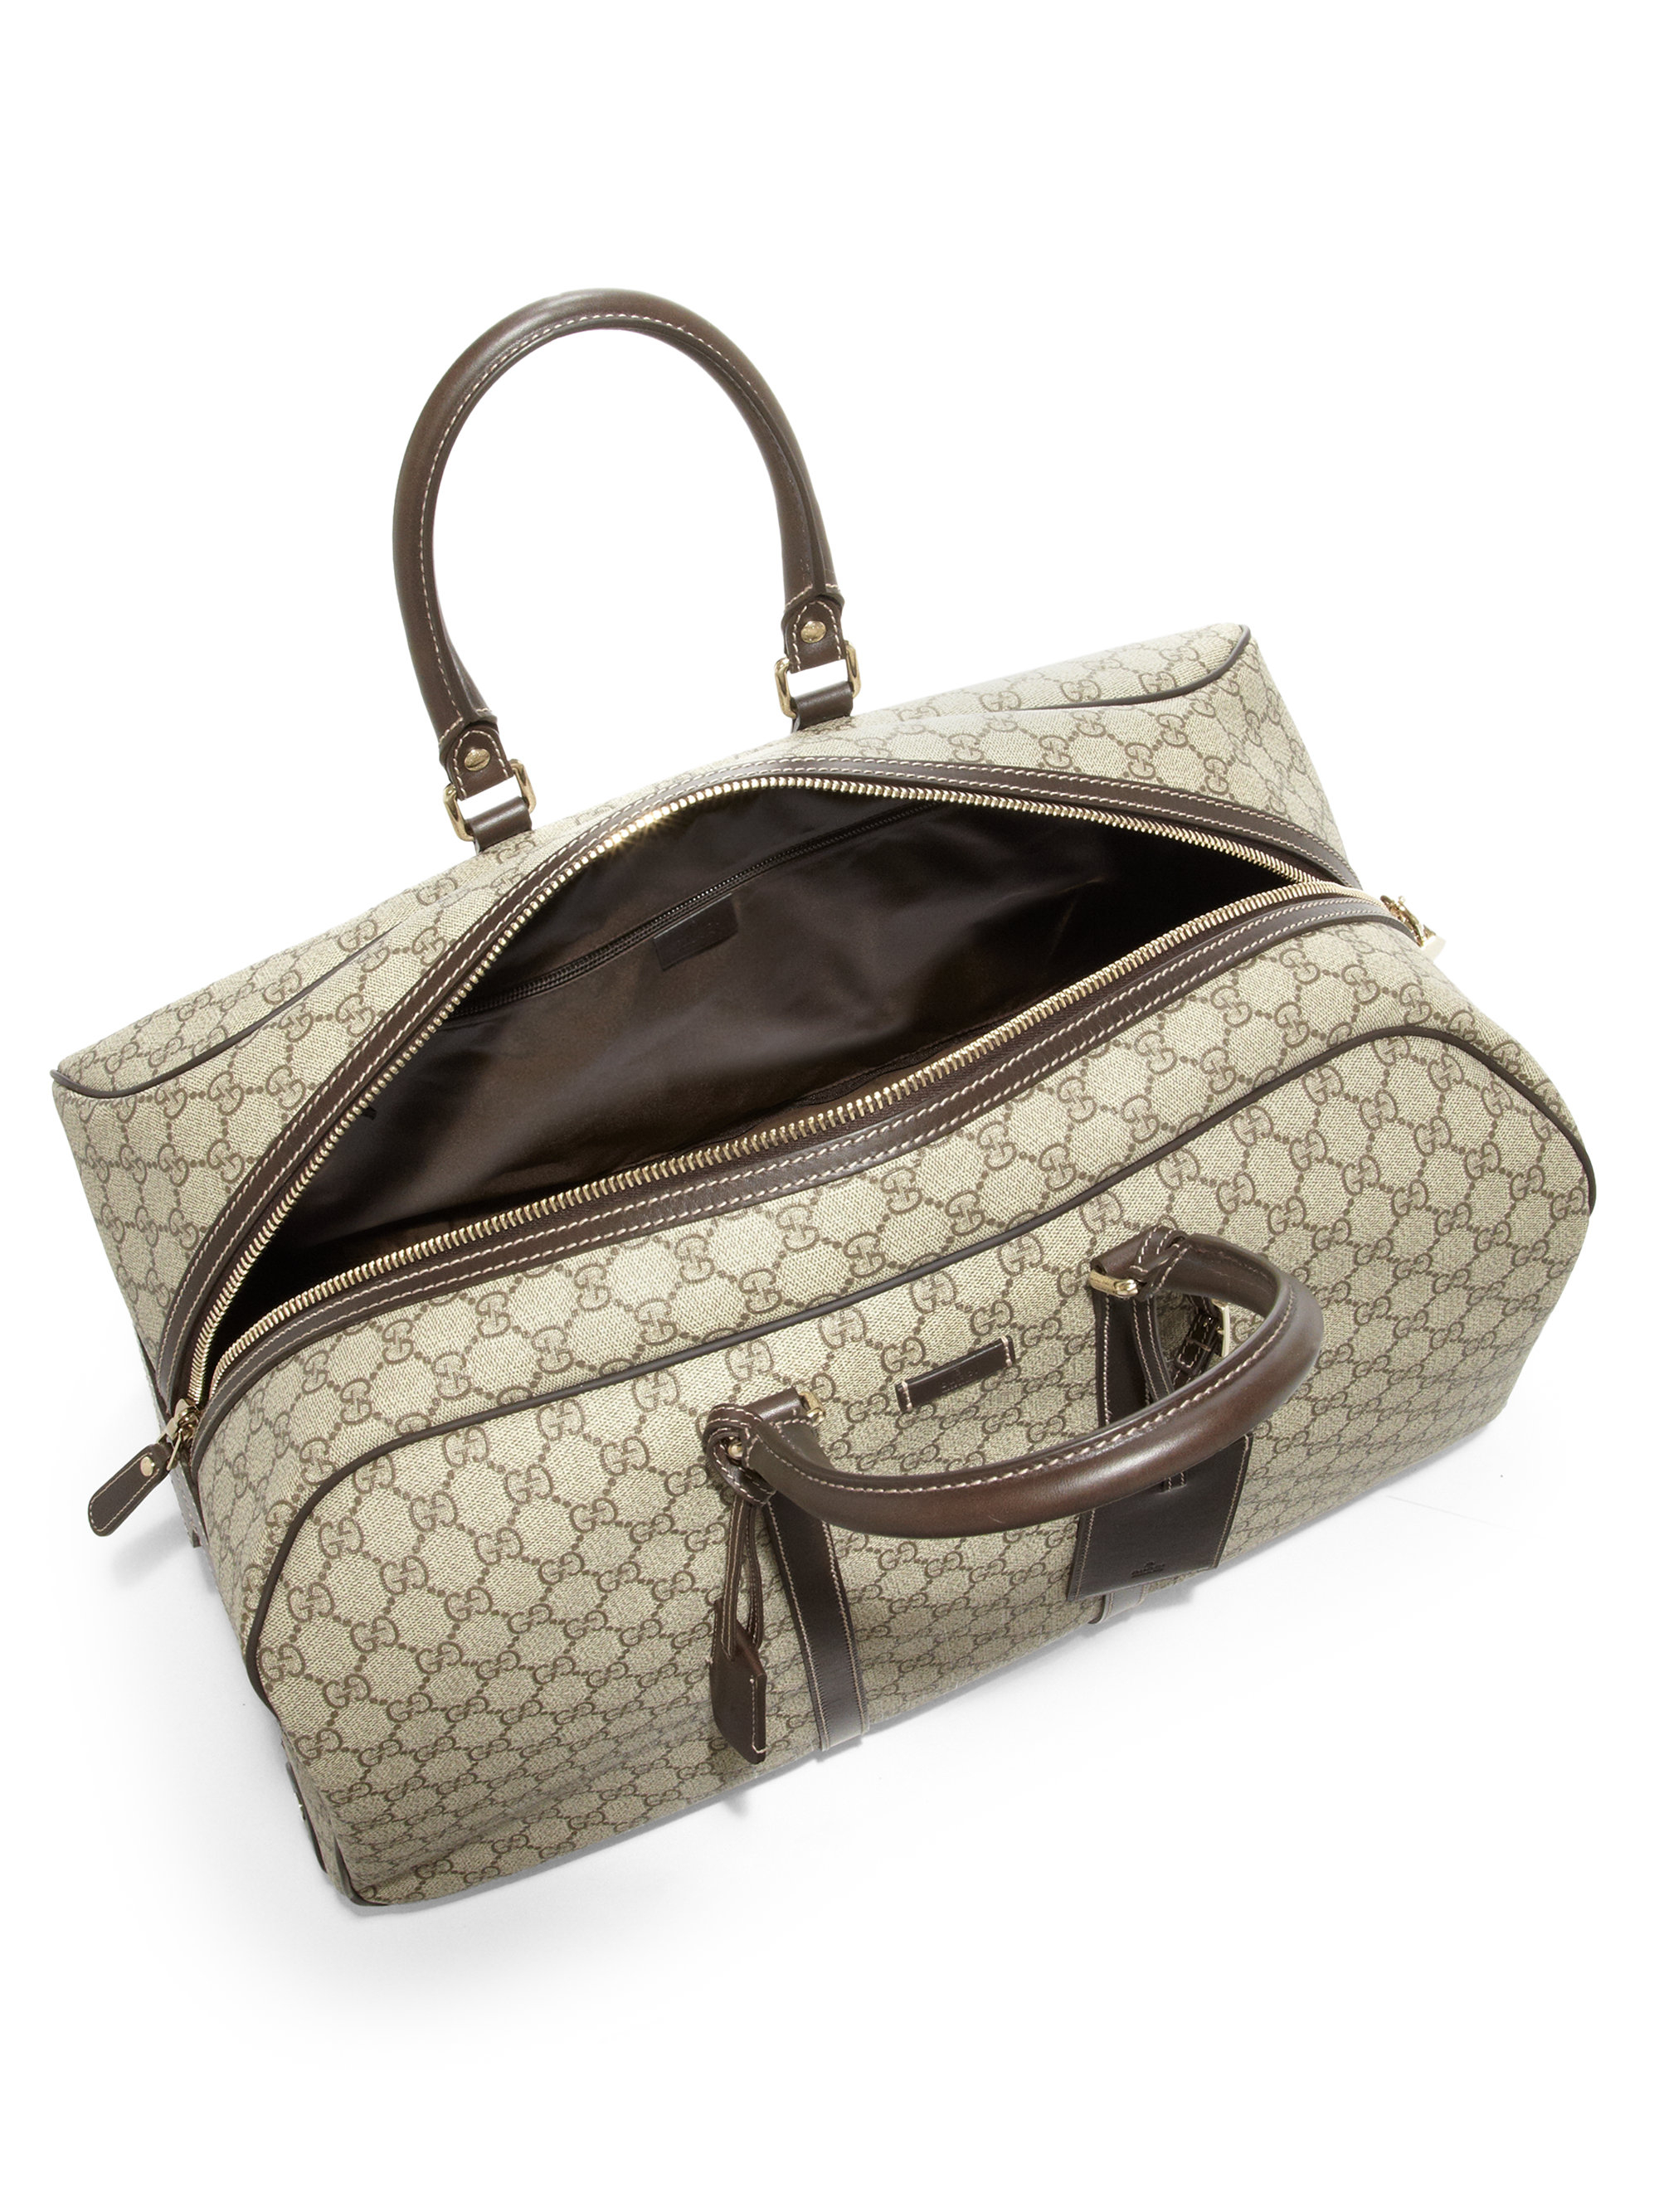 8c35b4419f05 Gucci Duffle Bag Saks | Stanford Center for Opportunity Policy in ...